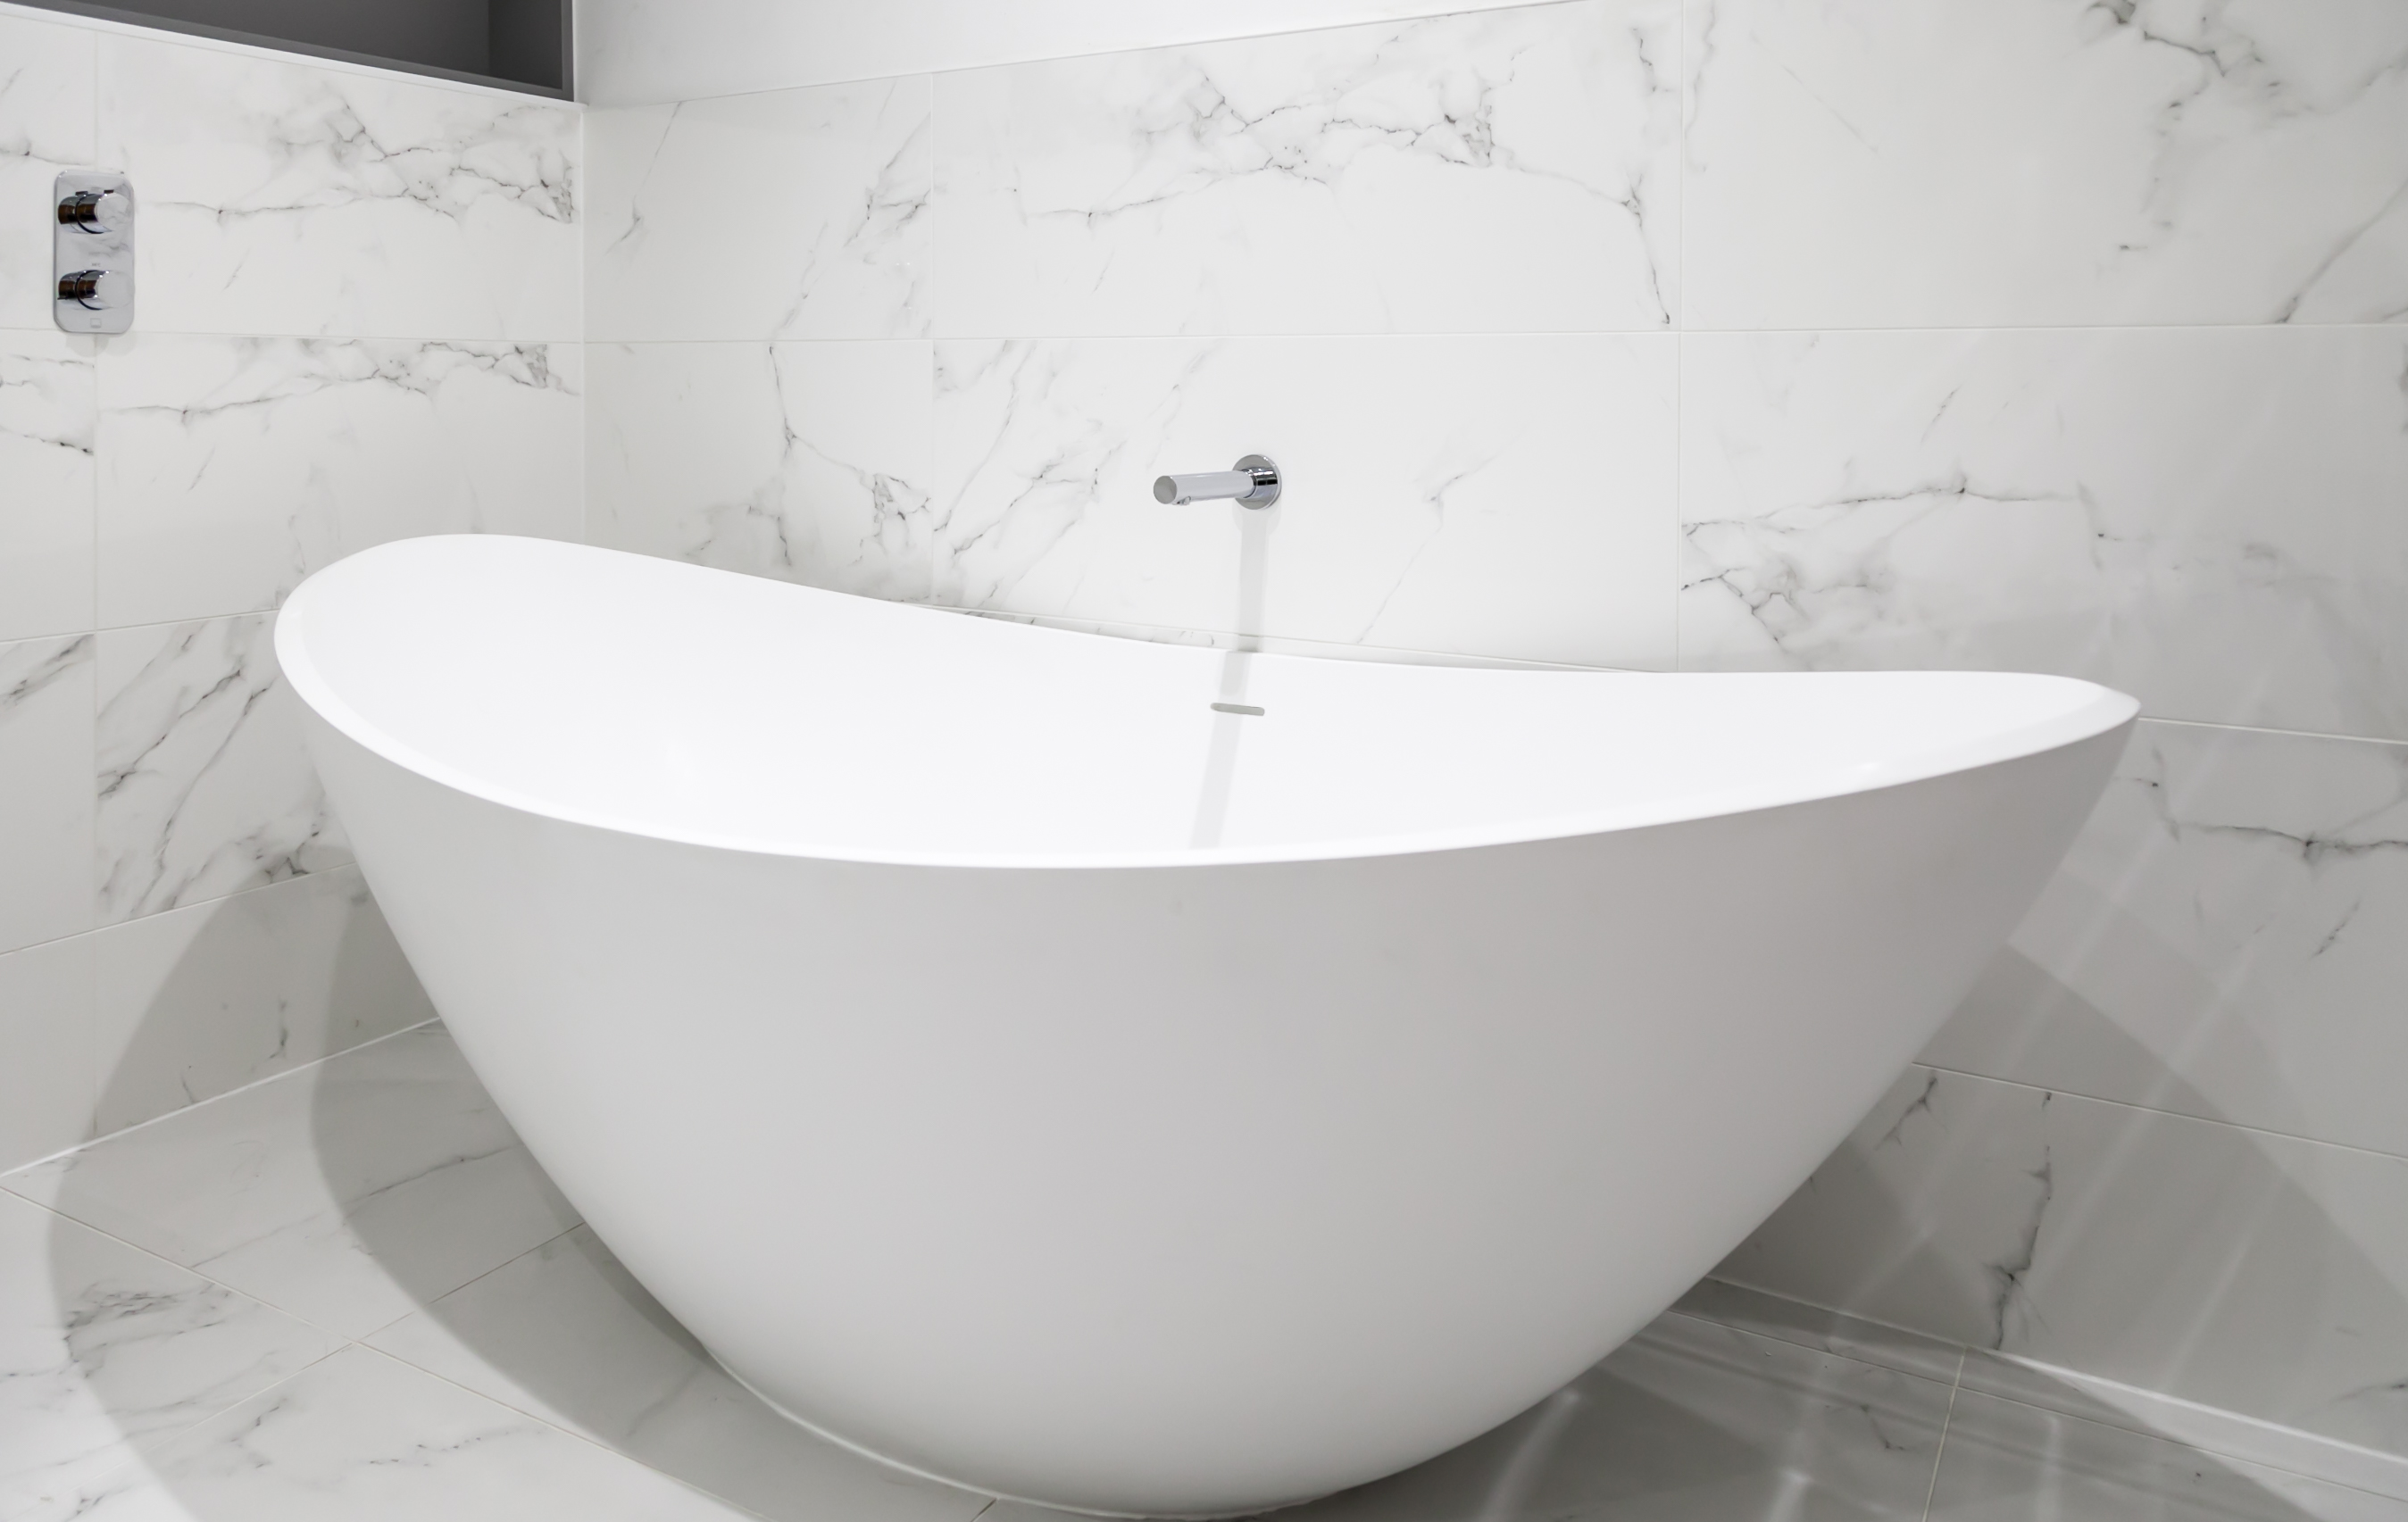 Sommerford Bathroom Project - Bathrooms Cirencester, Voga Bathrooms